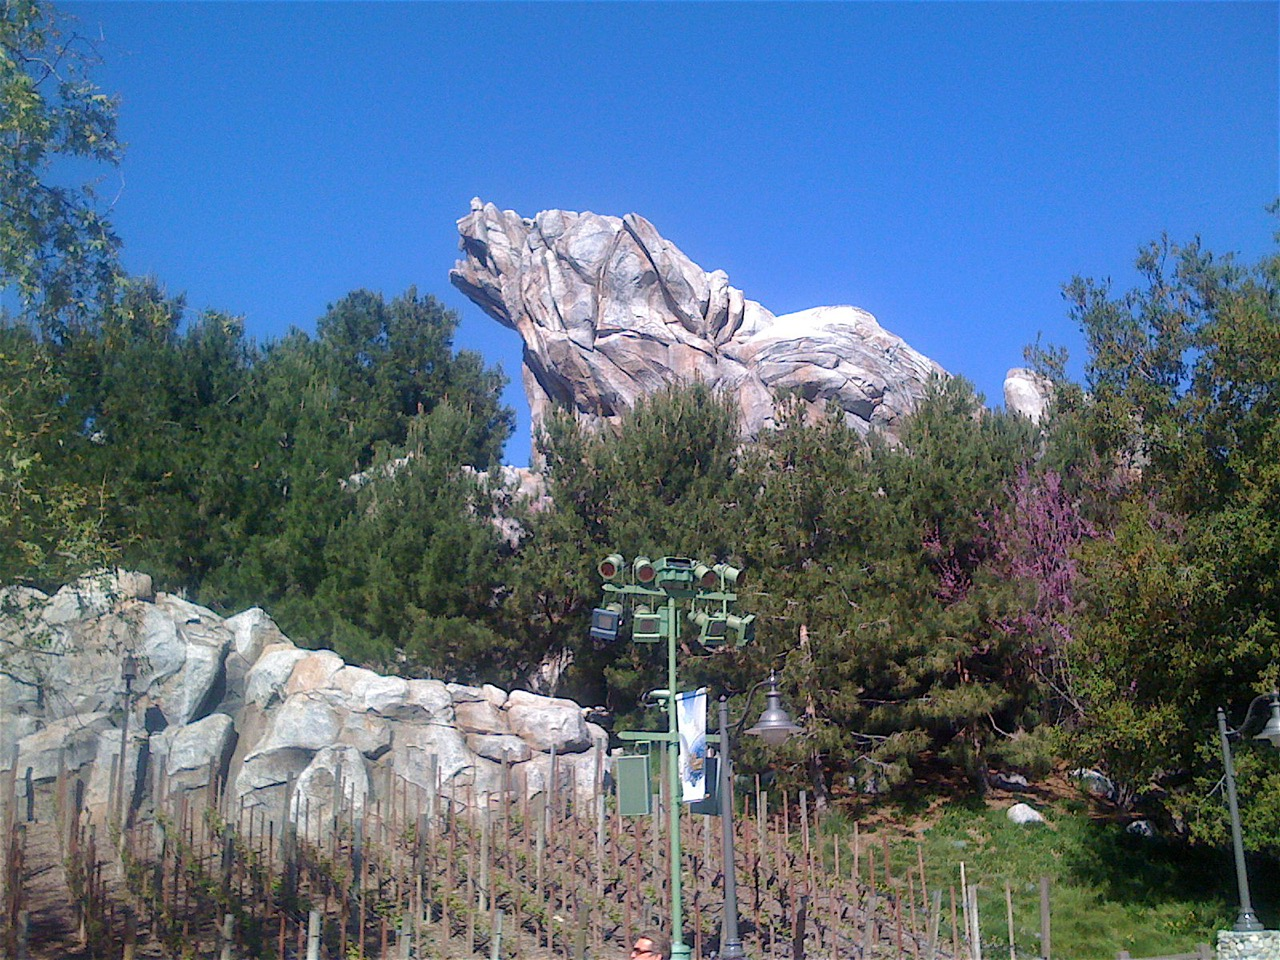 Grizzly Mountain is one DCA icon that has remained solid over the years. Photo by J. Jeff Kober.